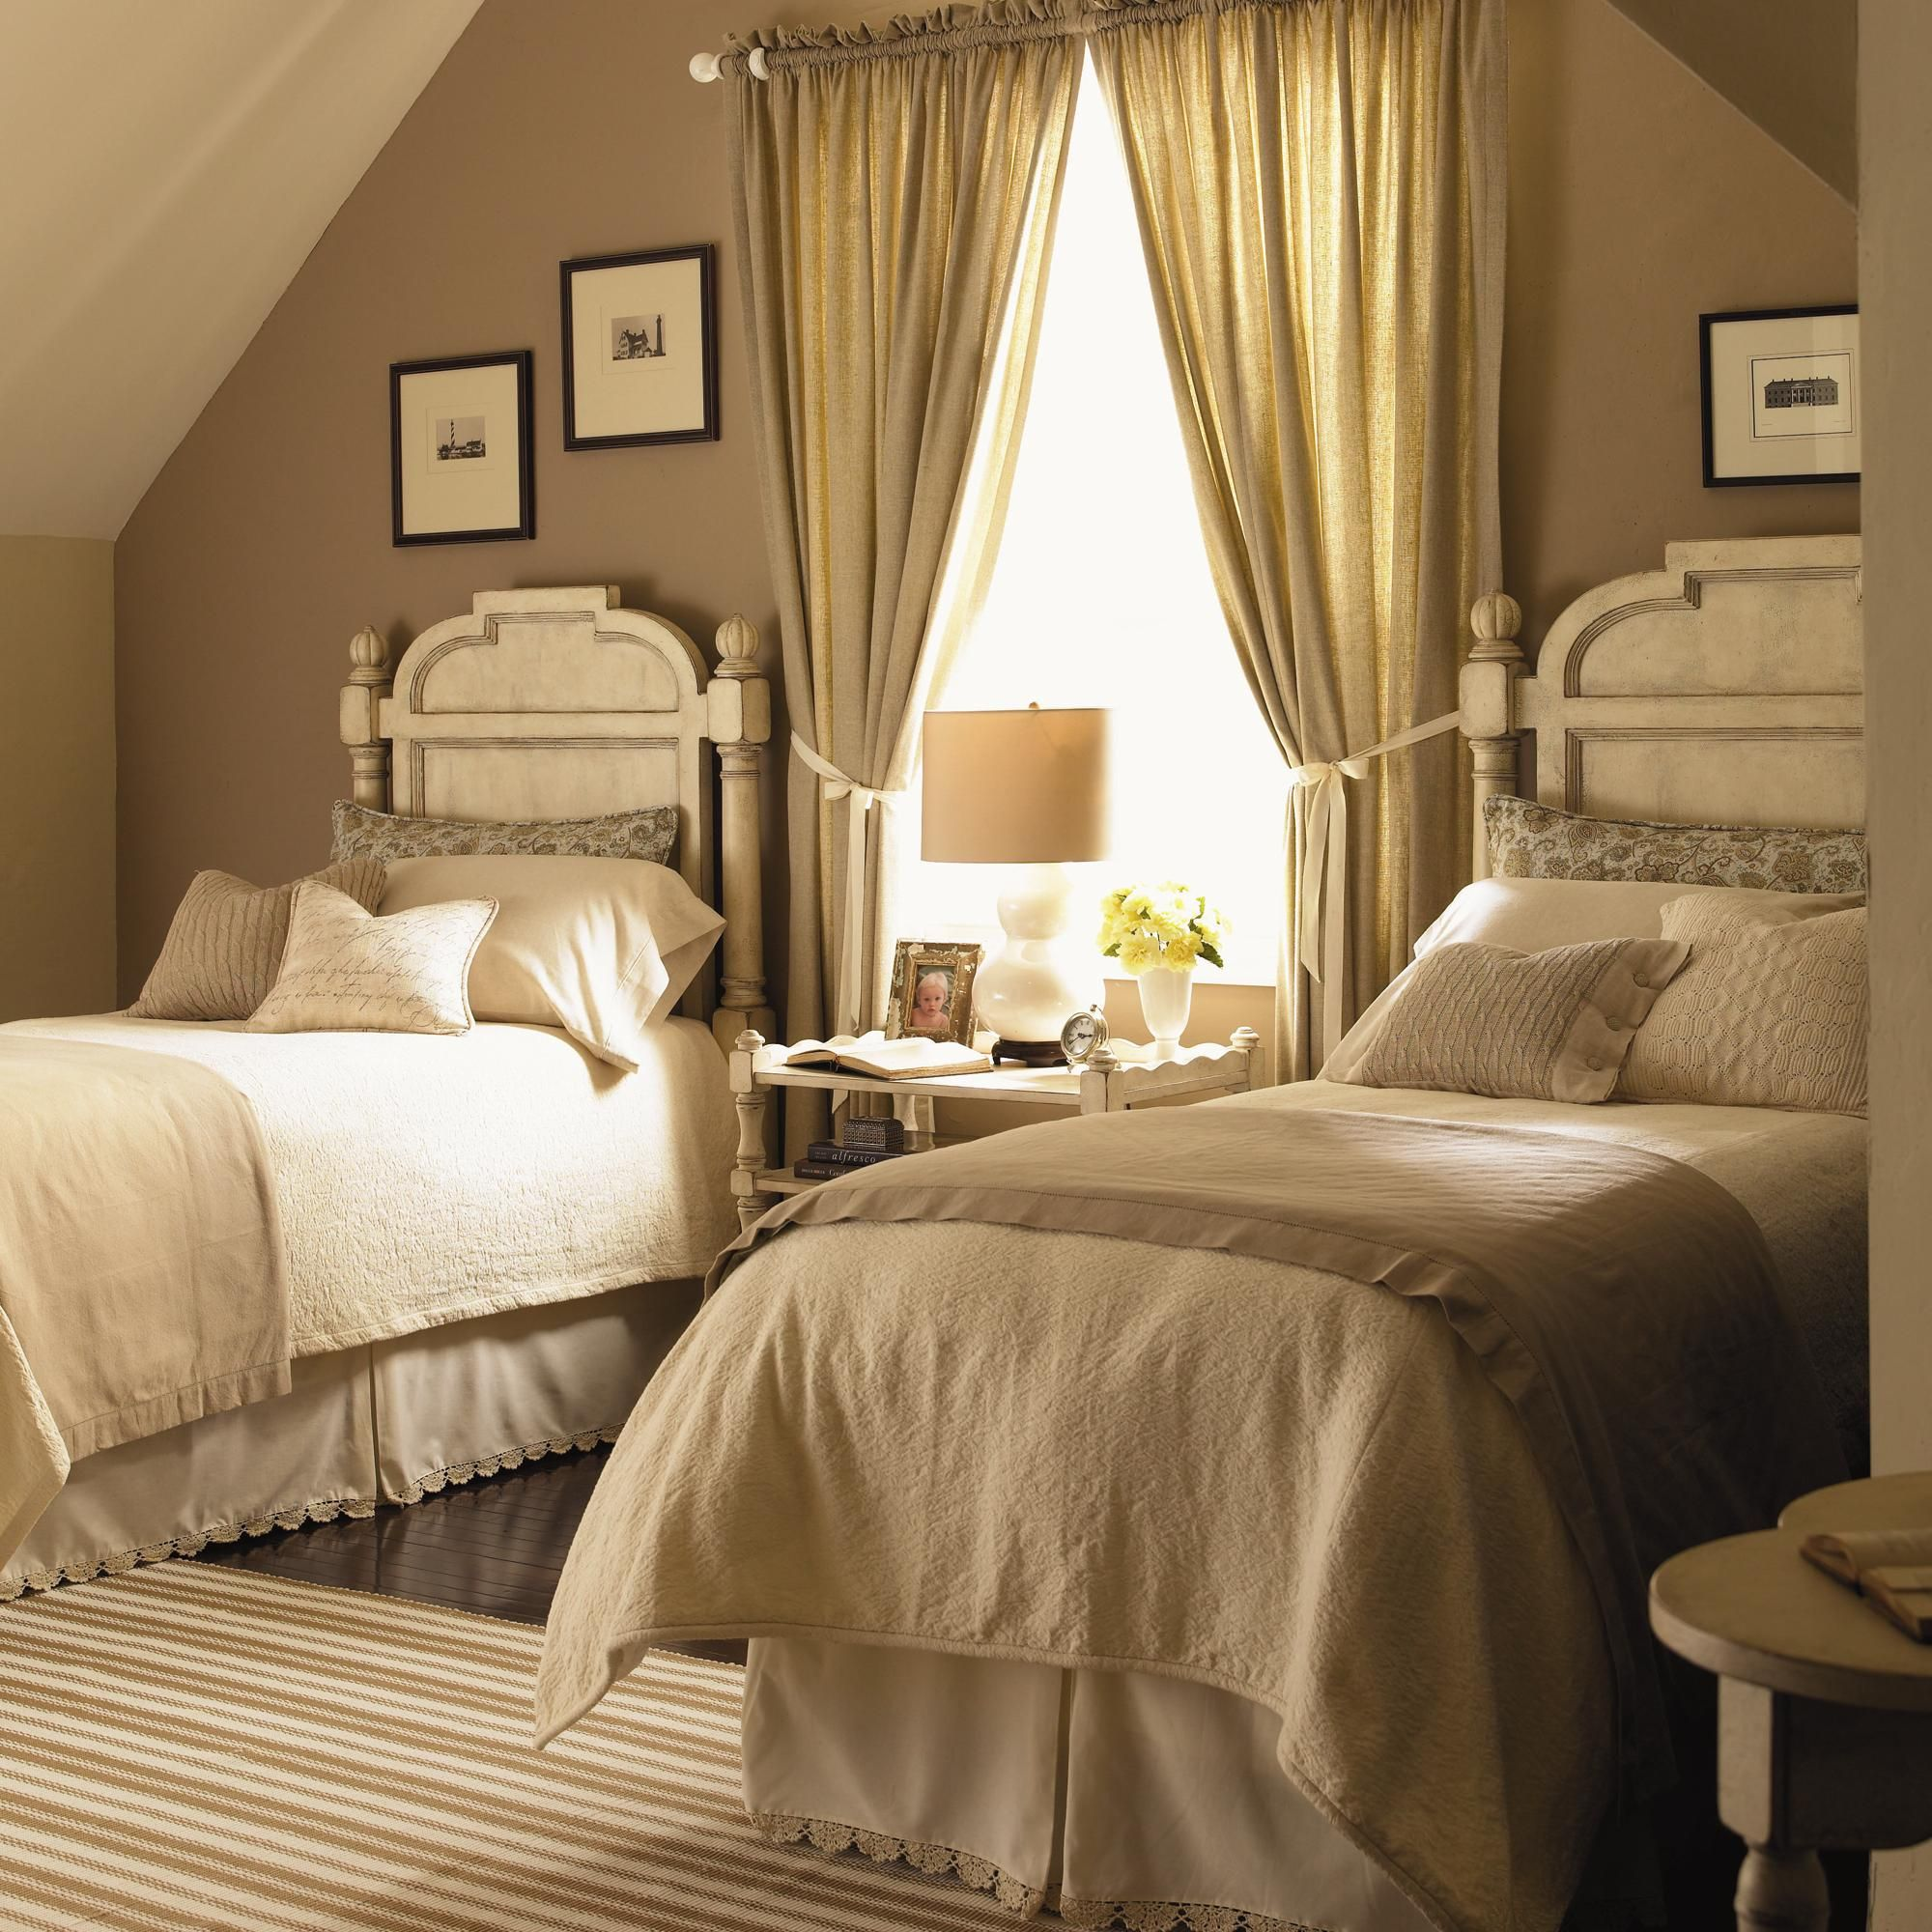 40 Guest Bedroom Ideas: Twin #bedroom. For More Traditional Home Ideas: Www